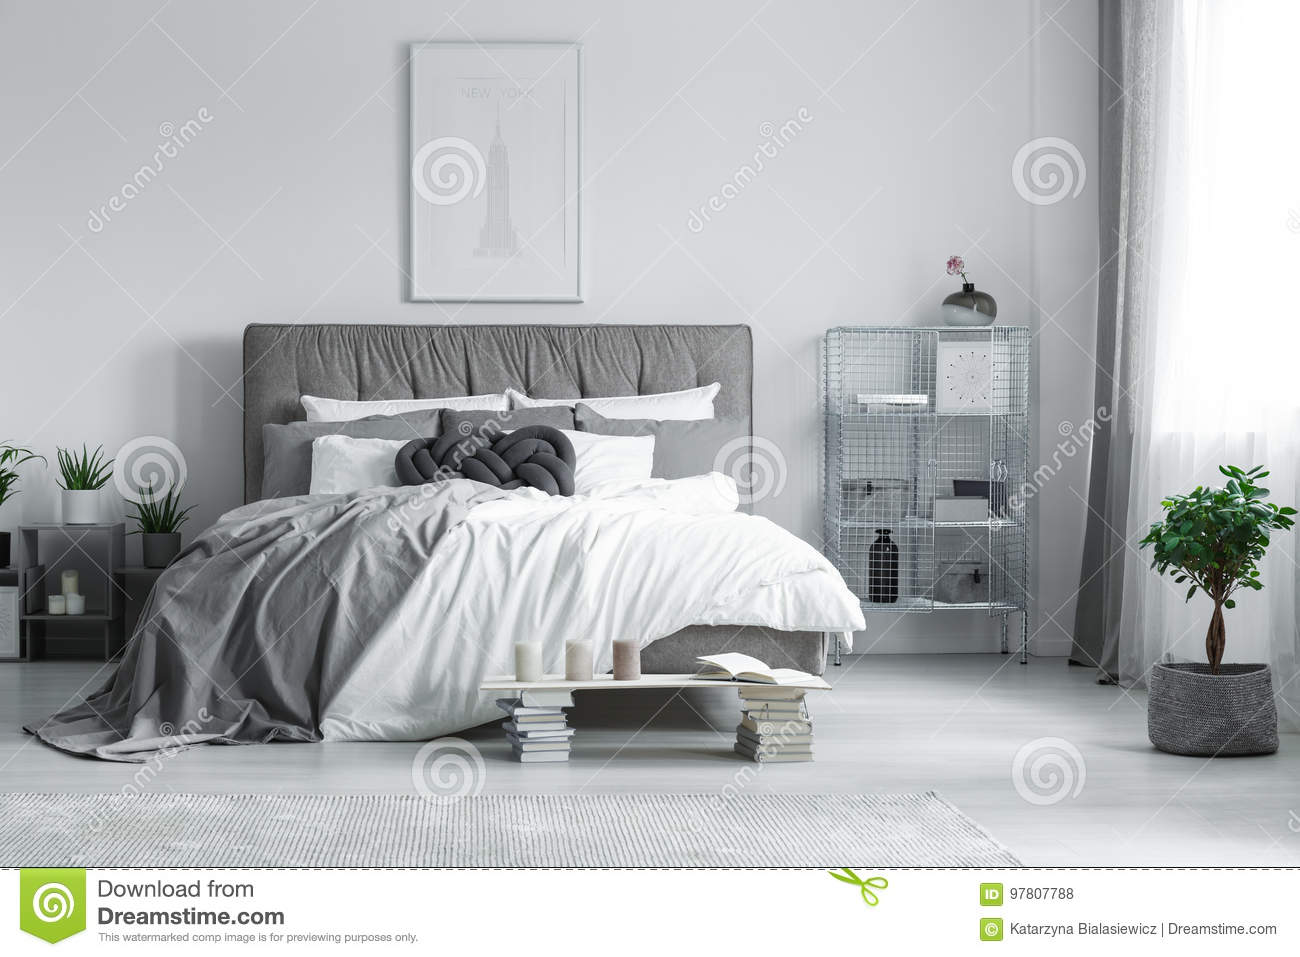 Download Painting Above The Bed Stock Photo. Image Of Bedroom   97807788